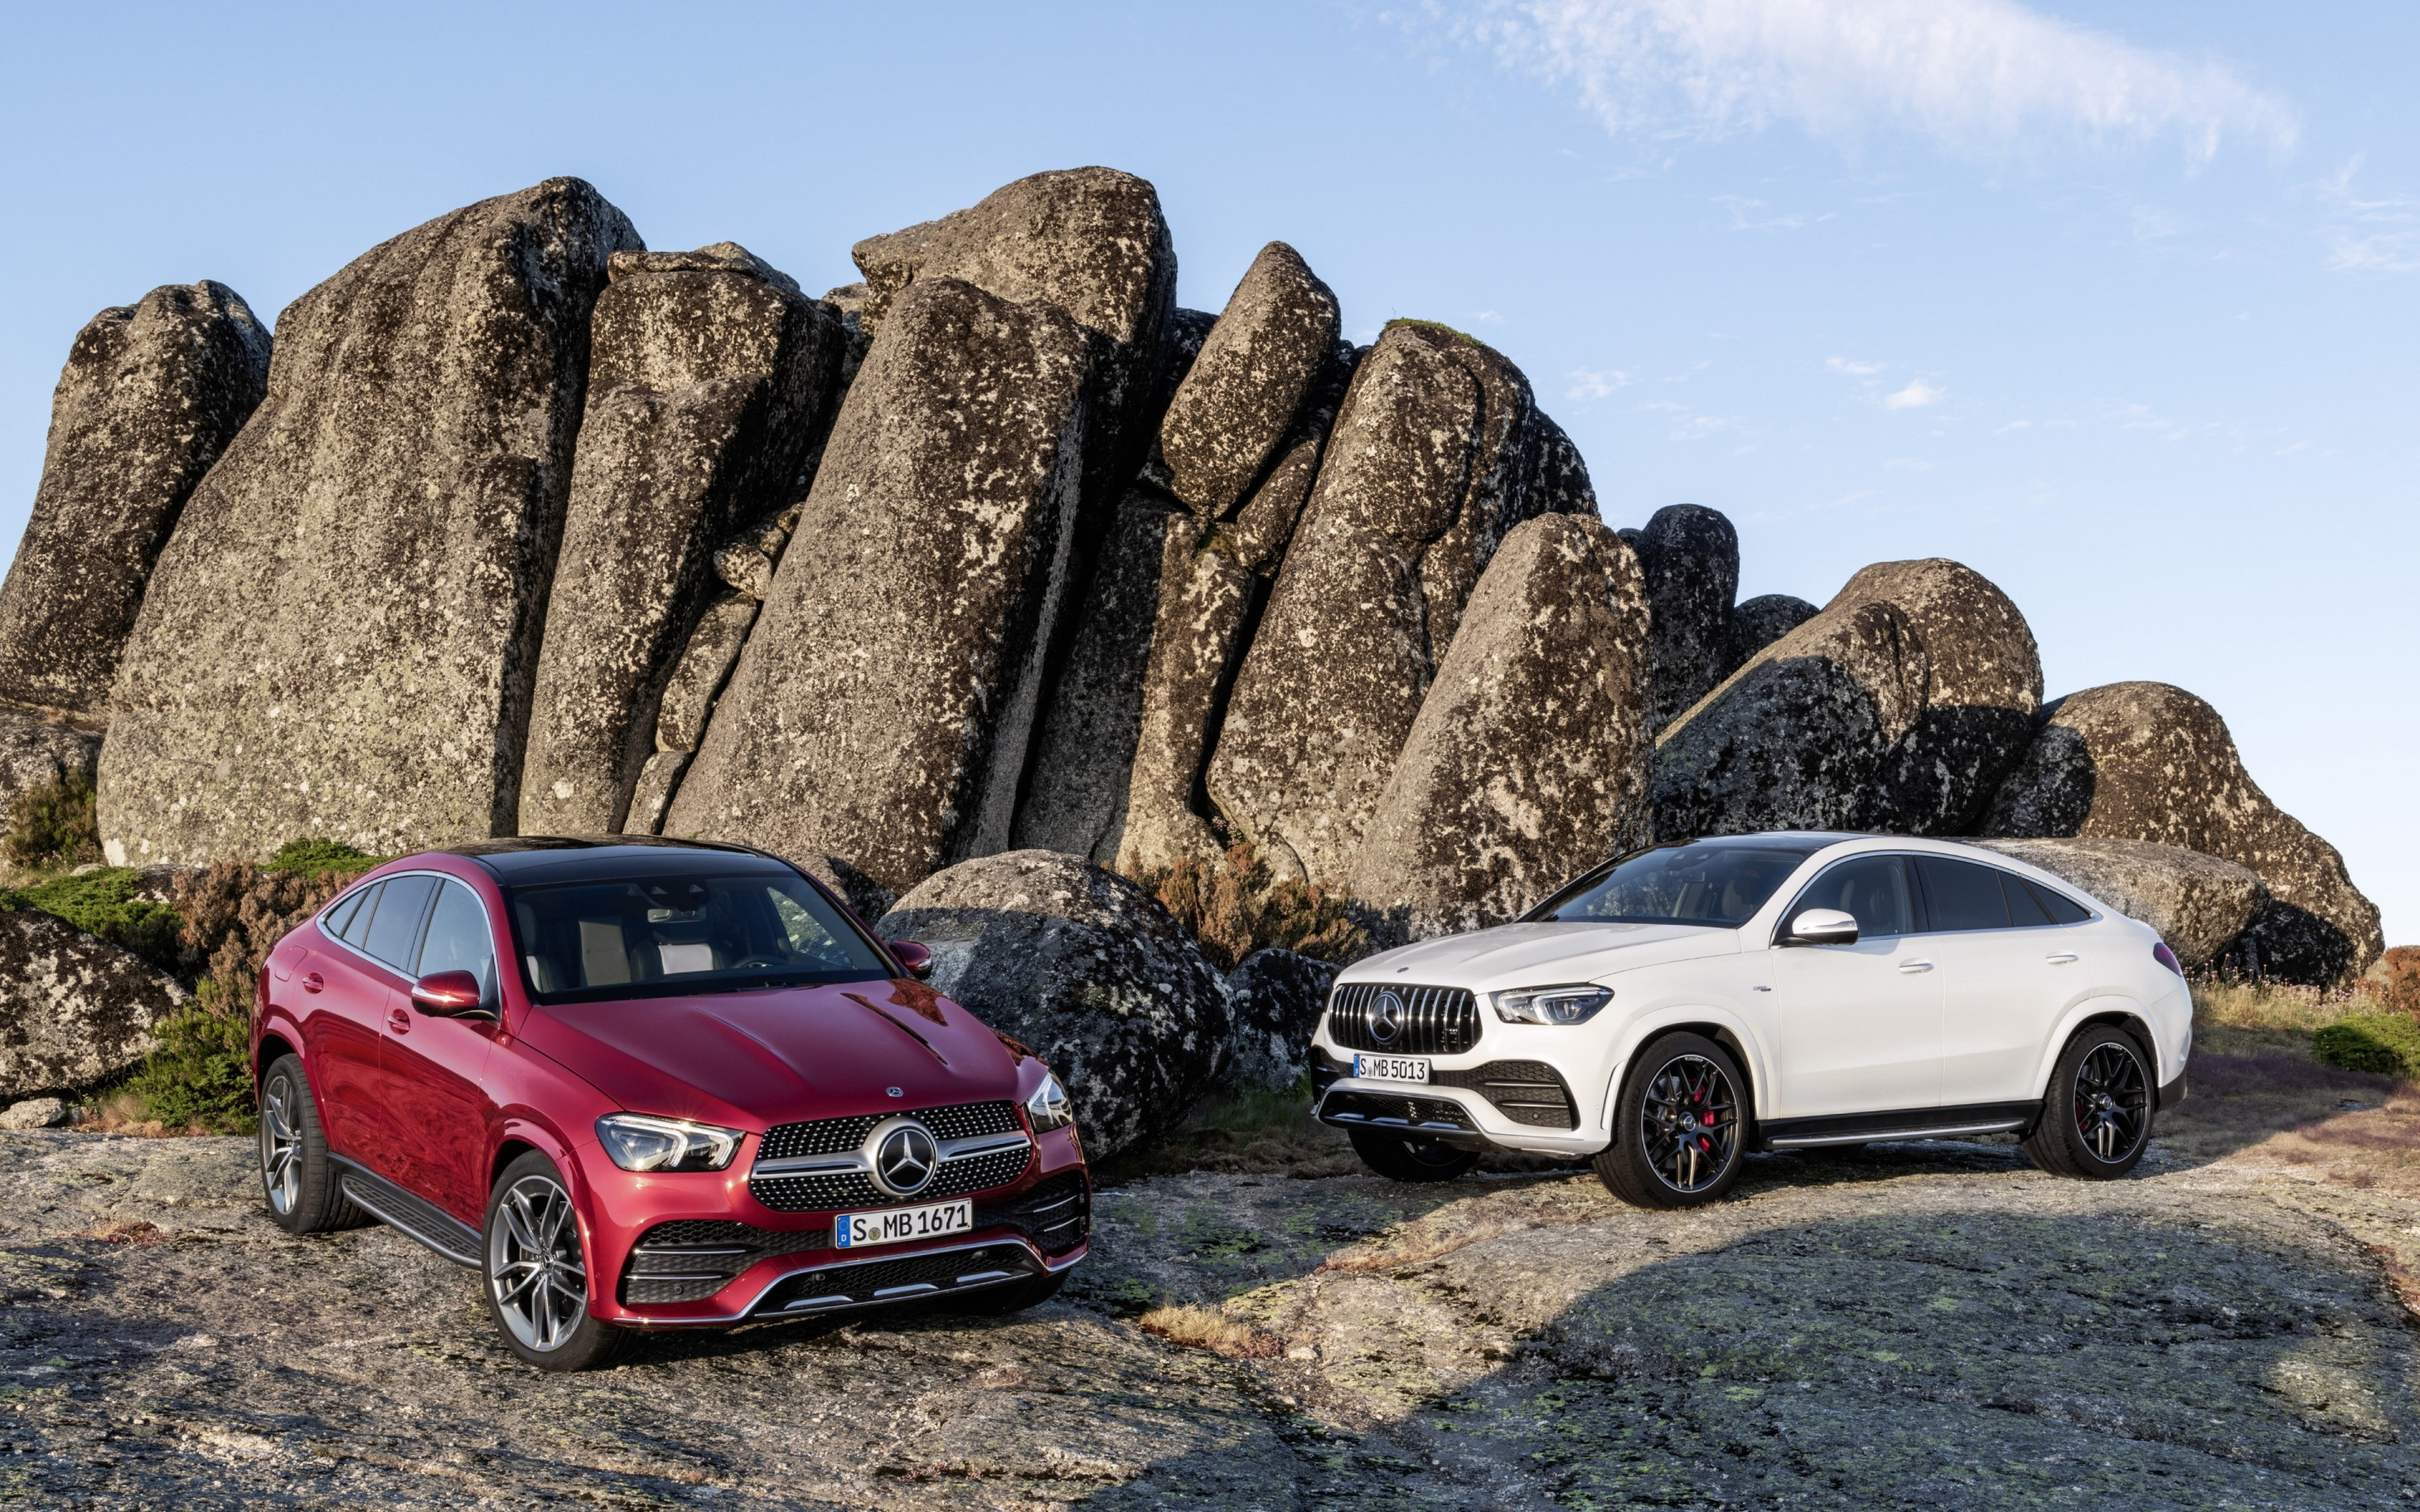 Mercedes Benz GLE AMG Coupe wallpaper 2880x1800